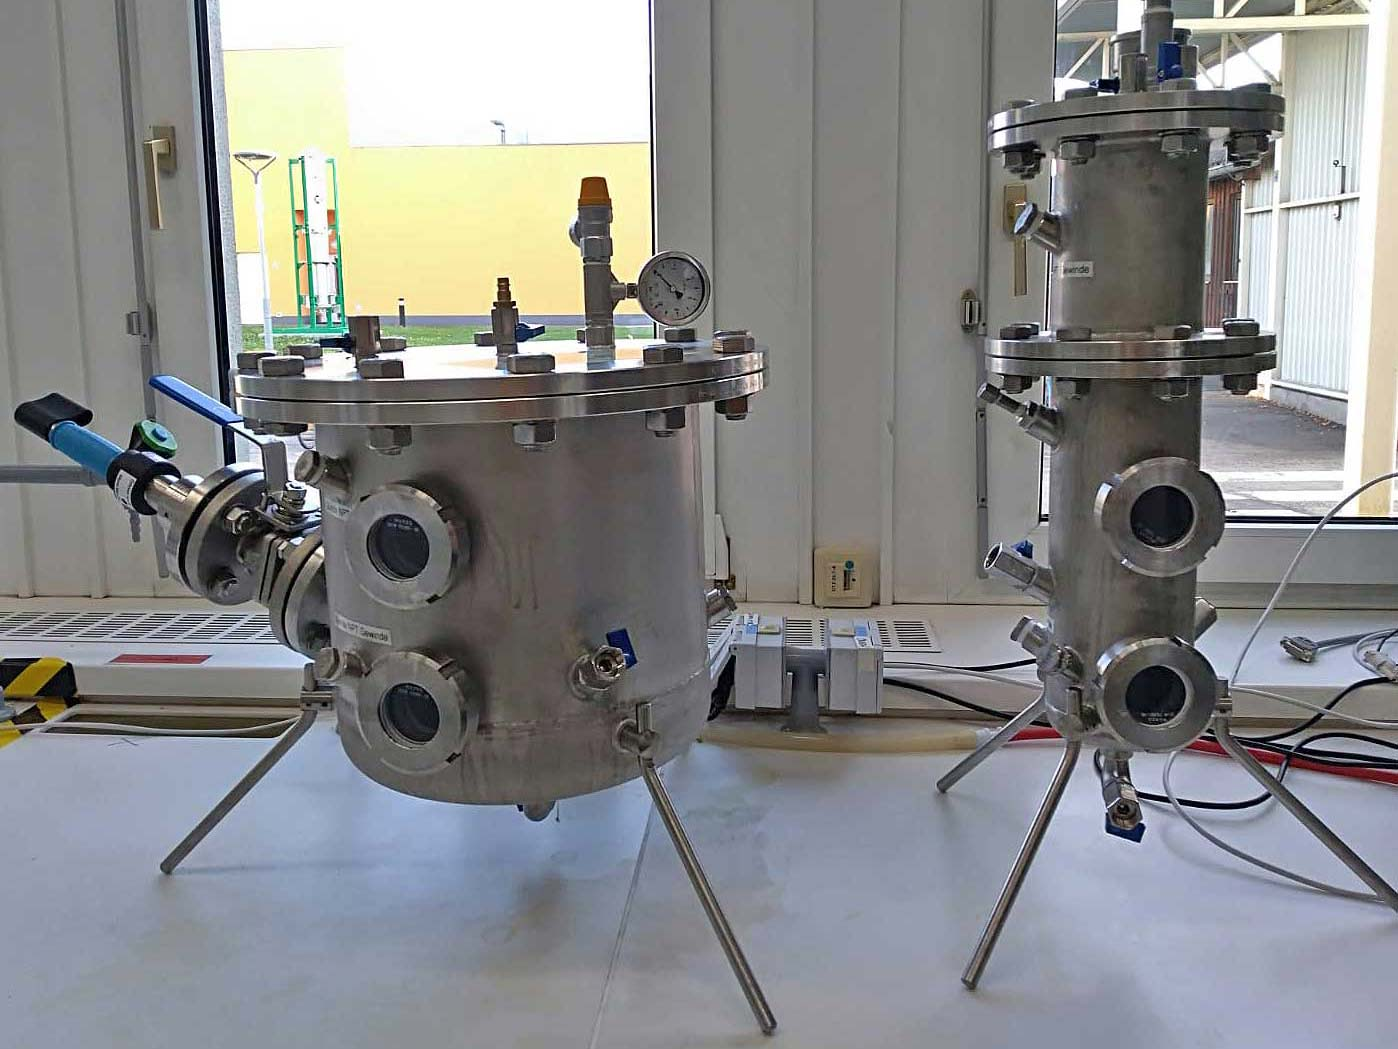 Bio-trickling filter and CSTR (Continuous stirred-tank reactor) at small scale, photo: University of Natural Resources and Life Sciences, Institute of Environmental Biotechnology